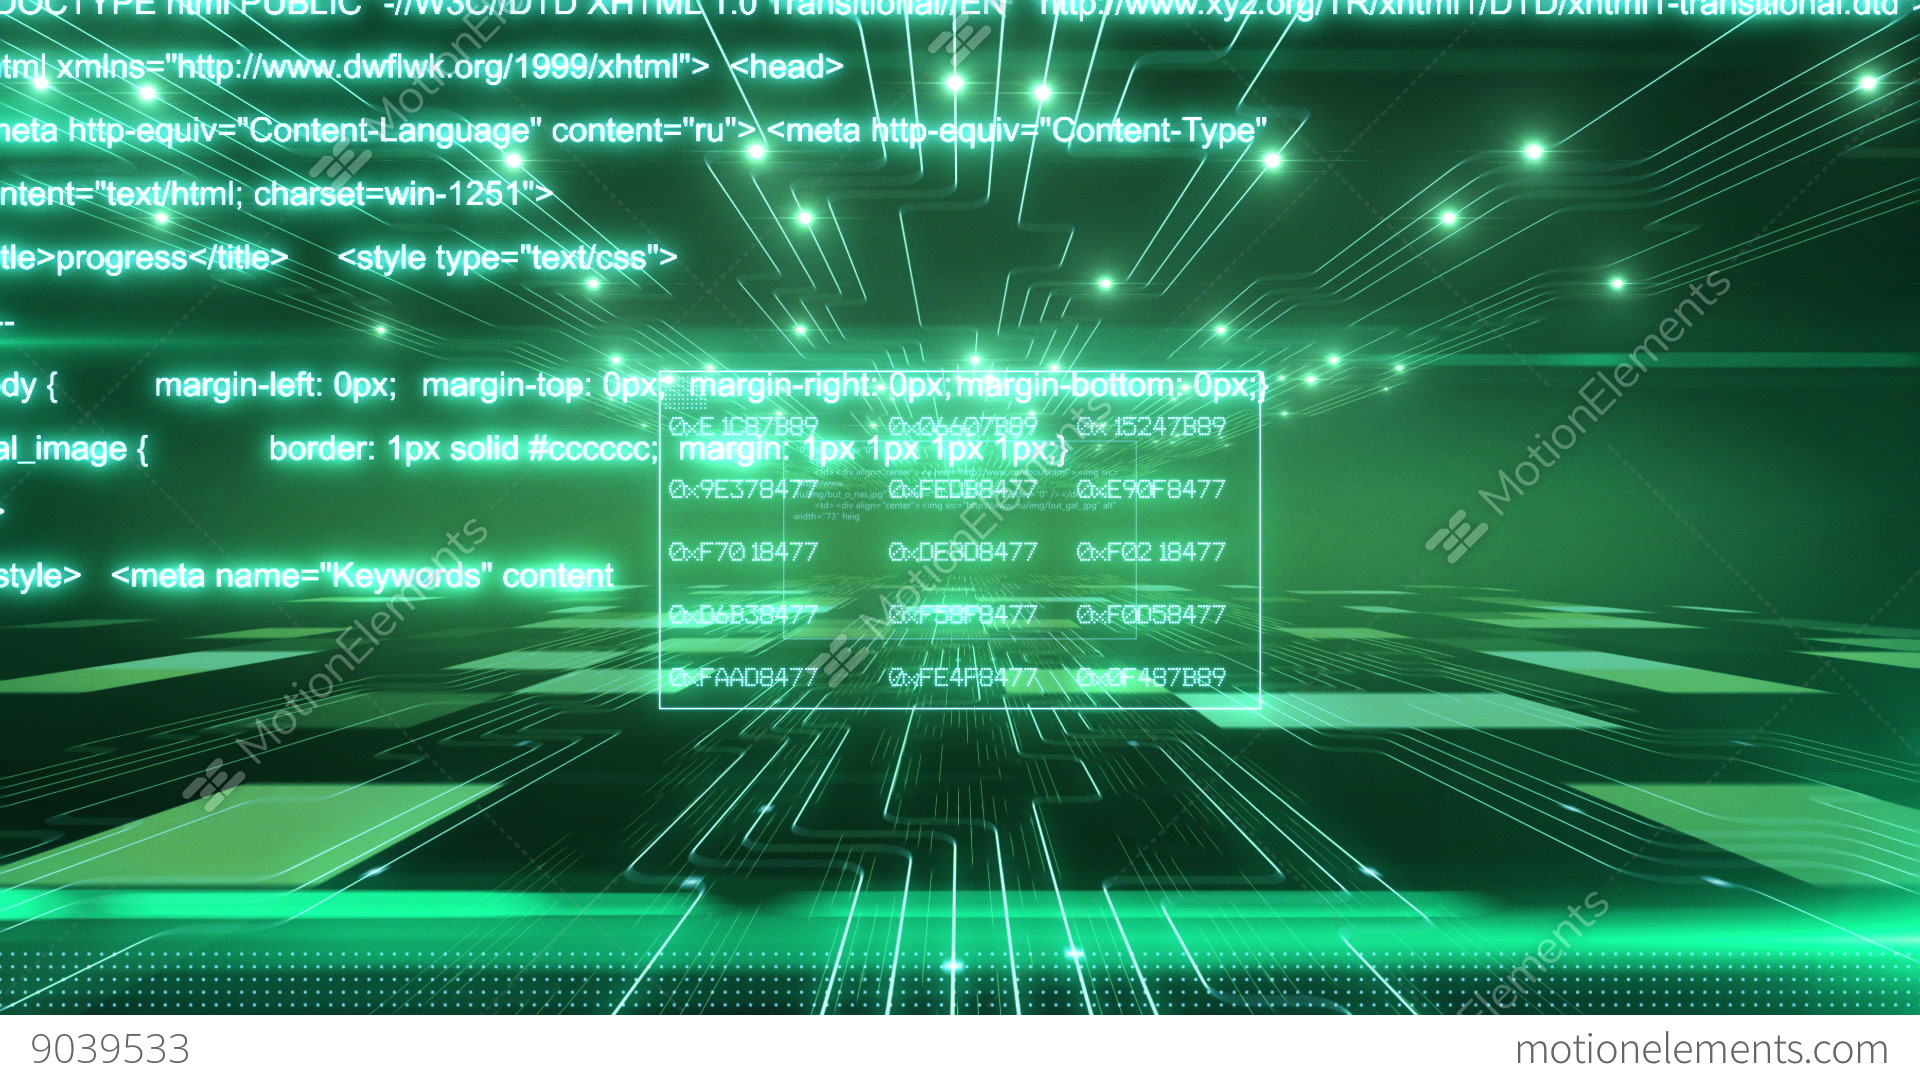 Background image xhtml - Green Digital Background Hd 1080